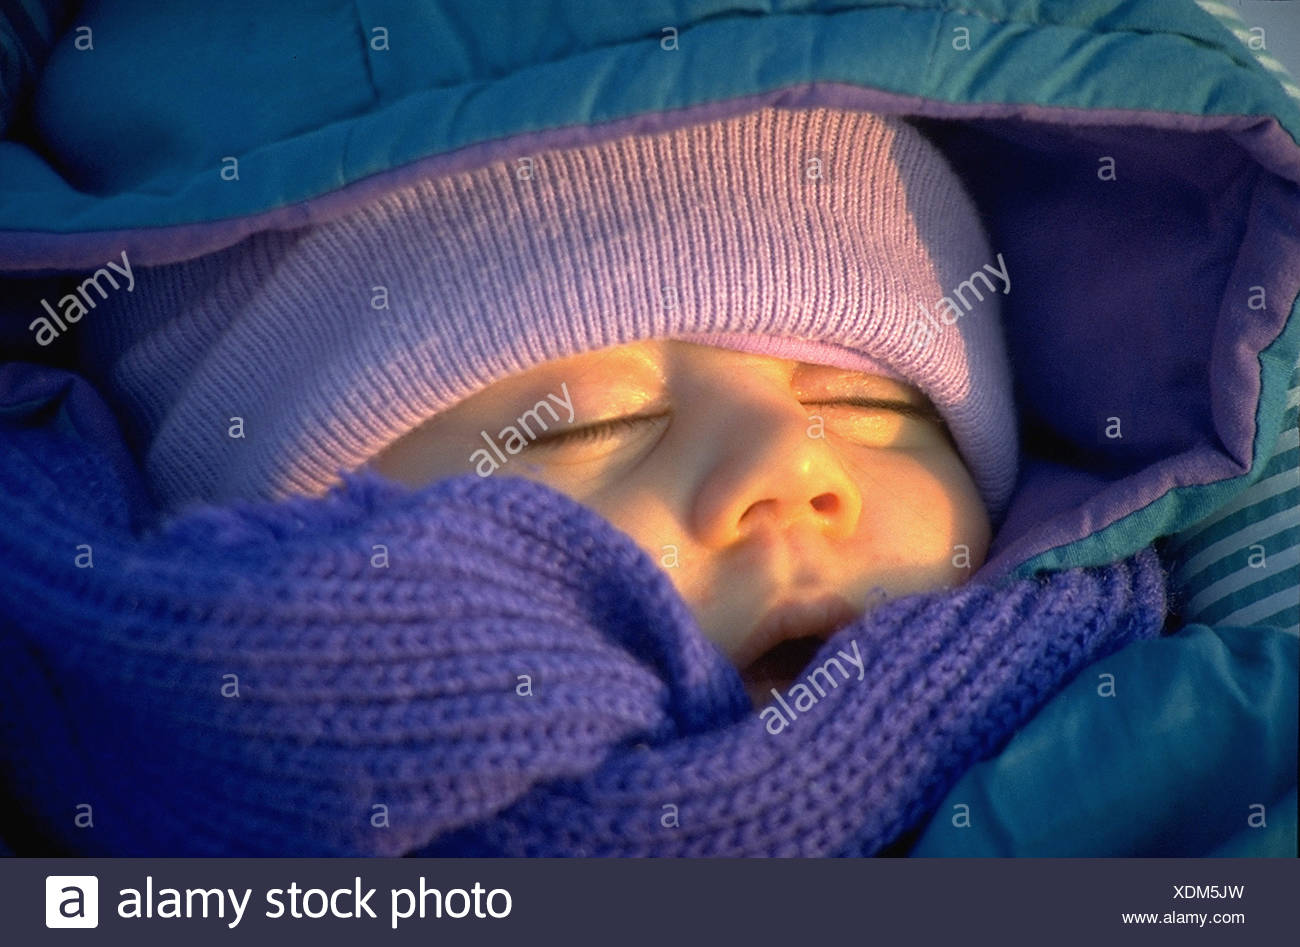 baby is sleeping deeply,evening sun,winter - Stock Image